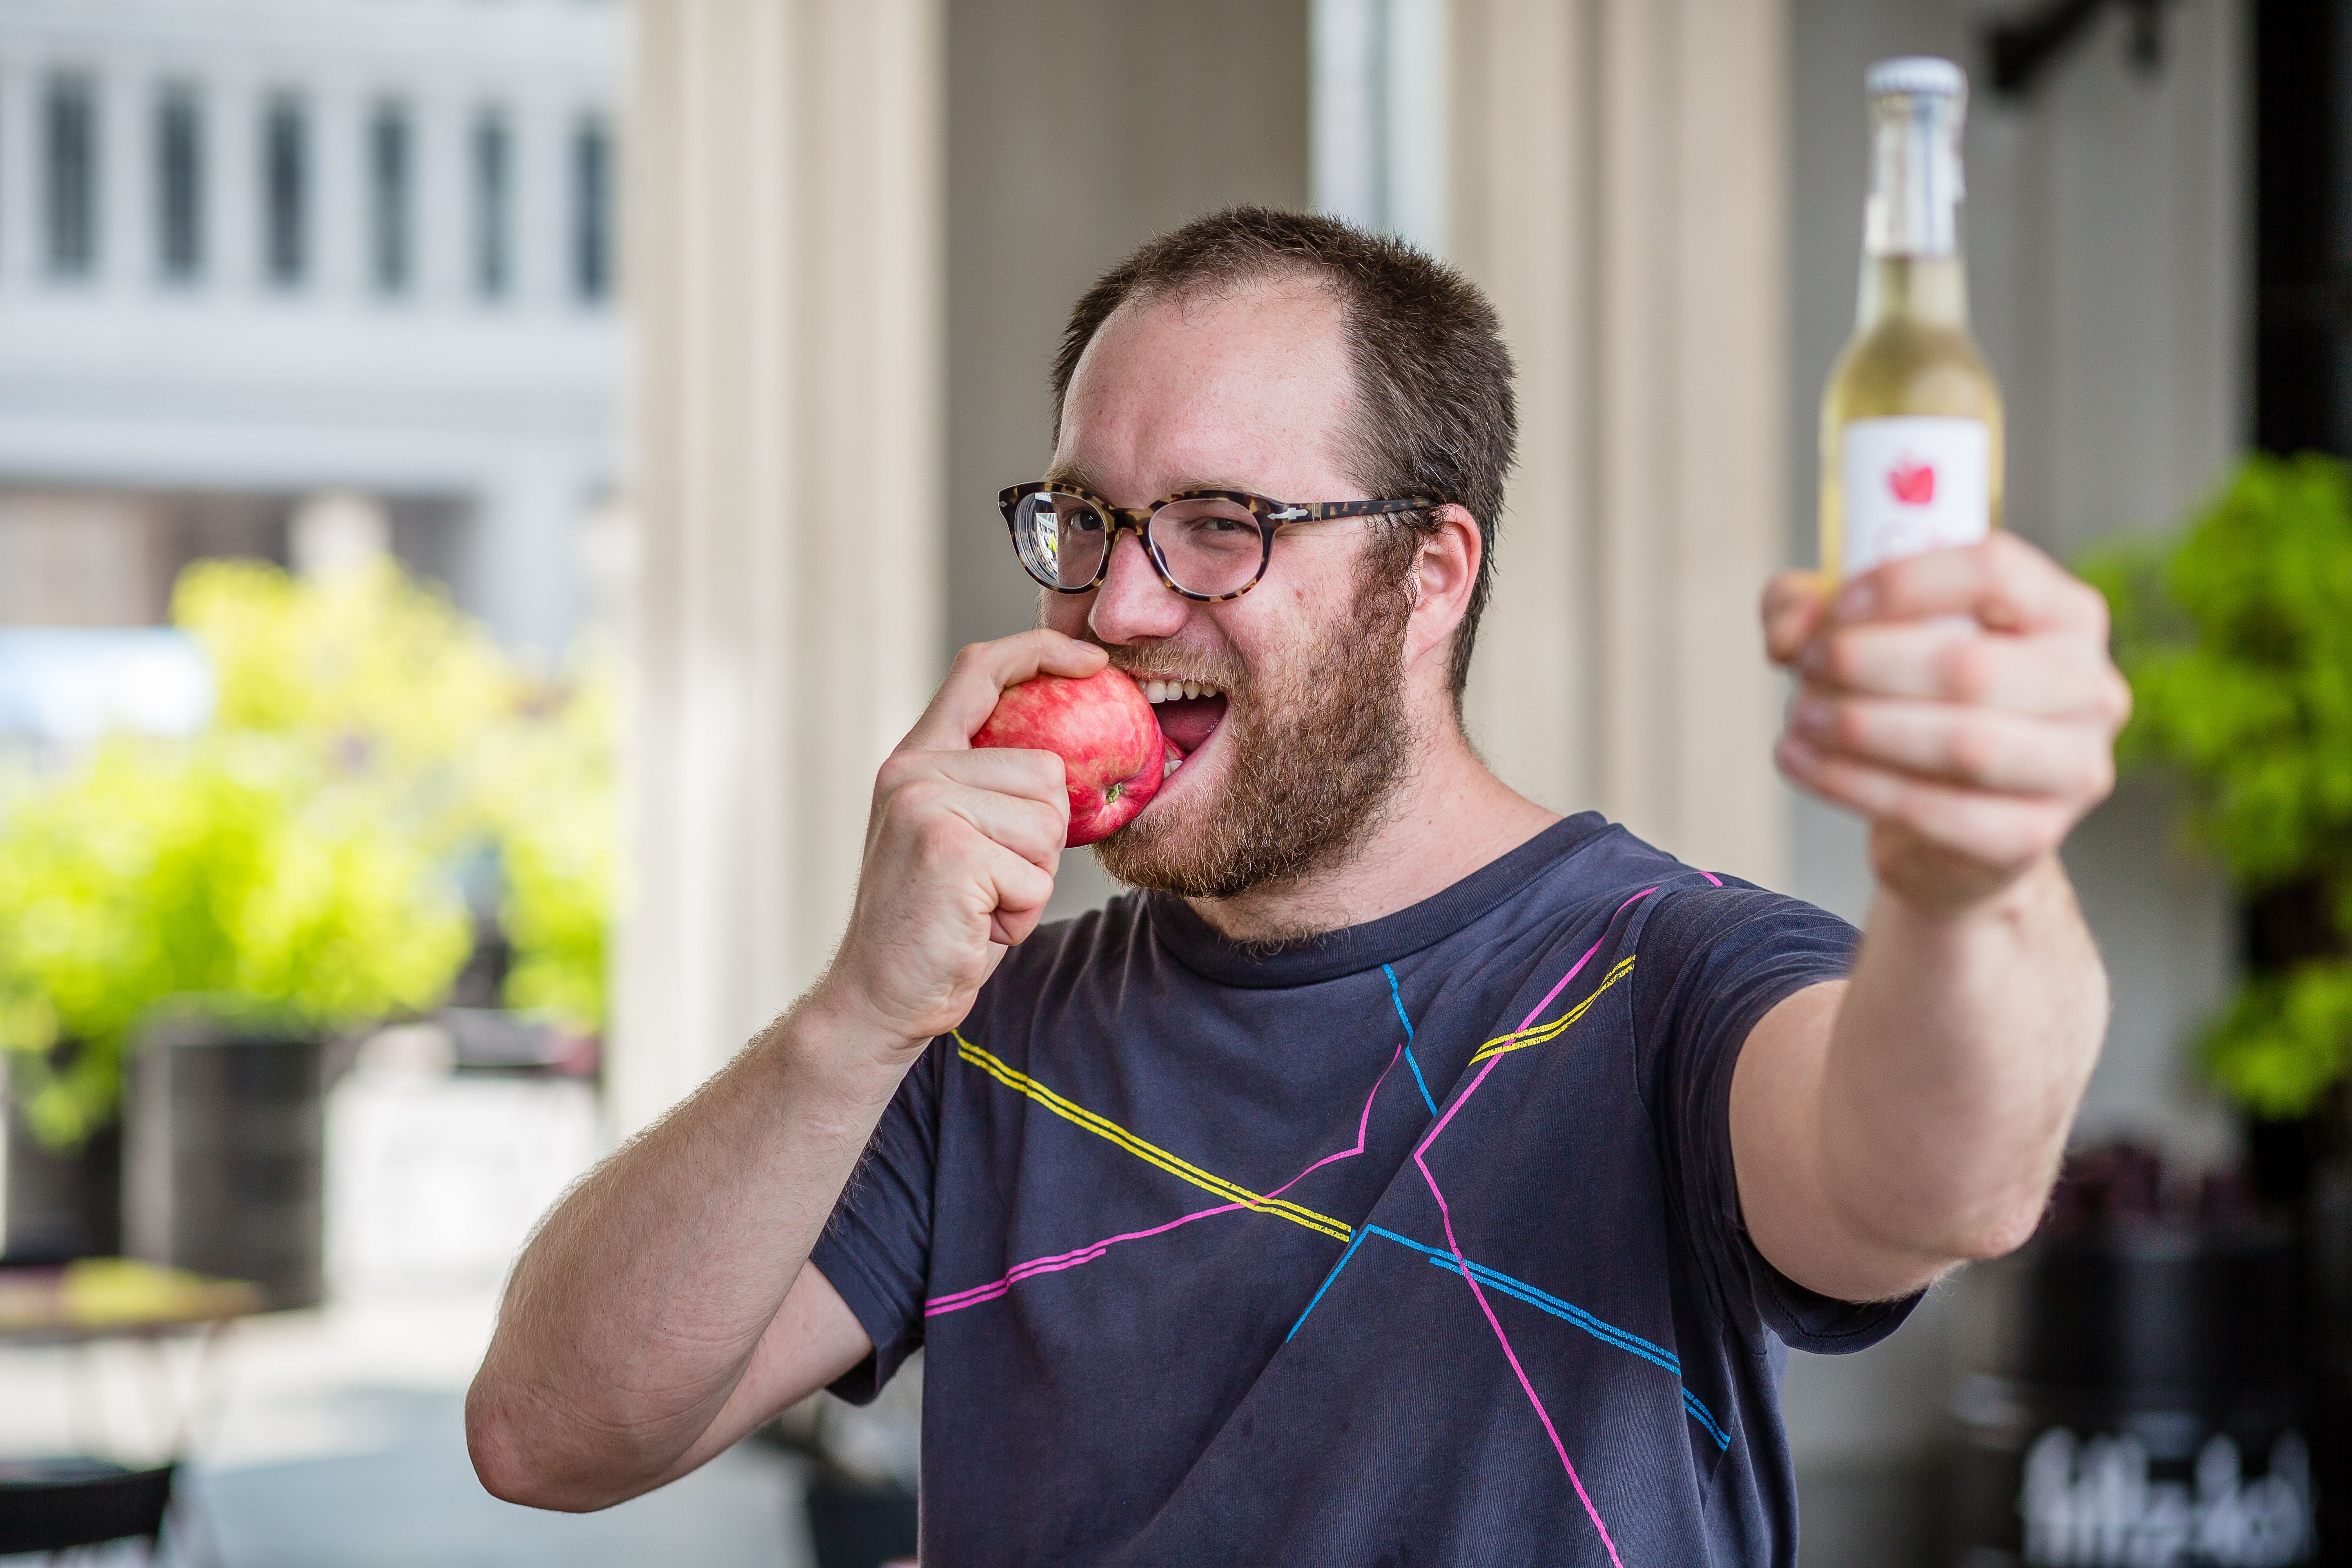 Jozef Czarnocki, owner of a popular Warsaw bar, is biting an apple and hoding a bottle of Polish cider to show his support for Twitter campaign  #eatapples to spite Putin , in Warsaw on July 31, 2014.